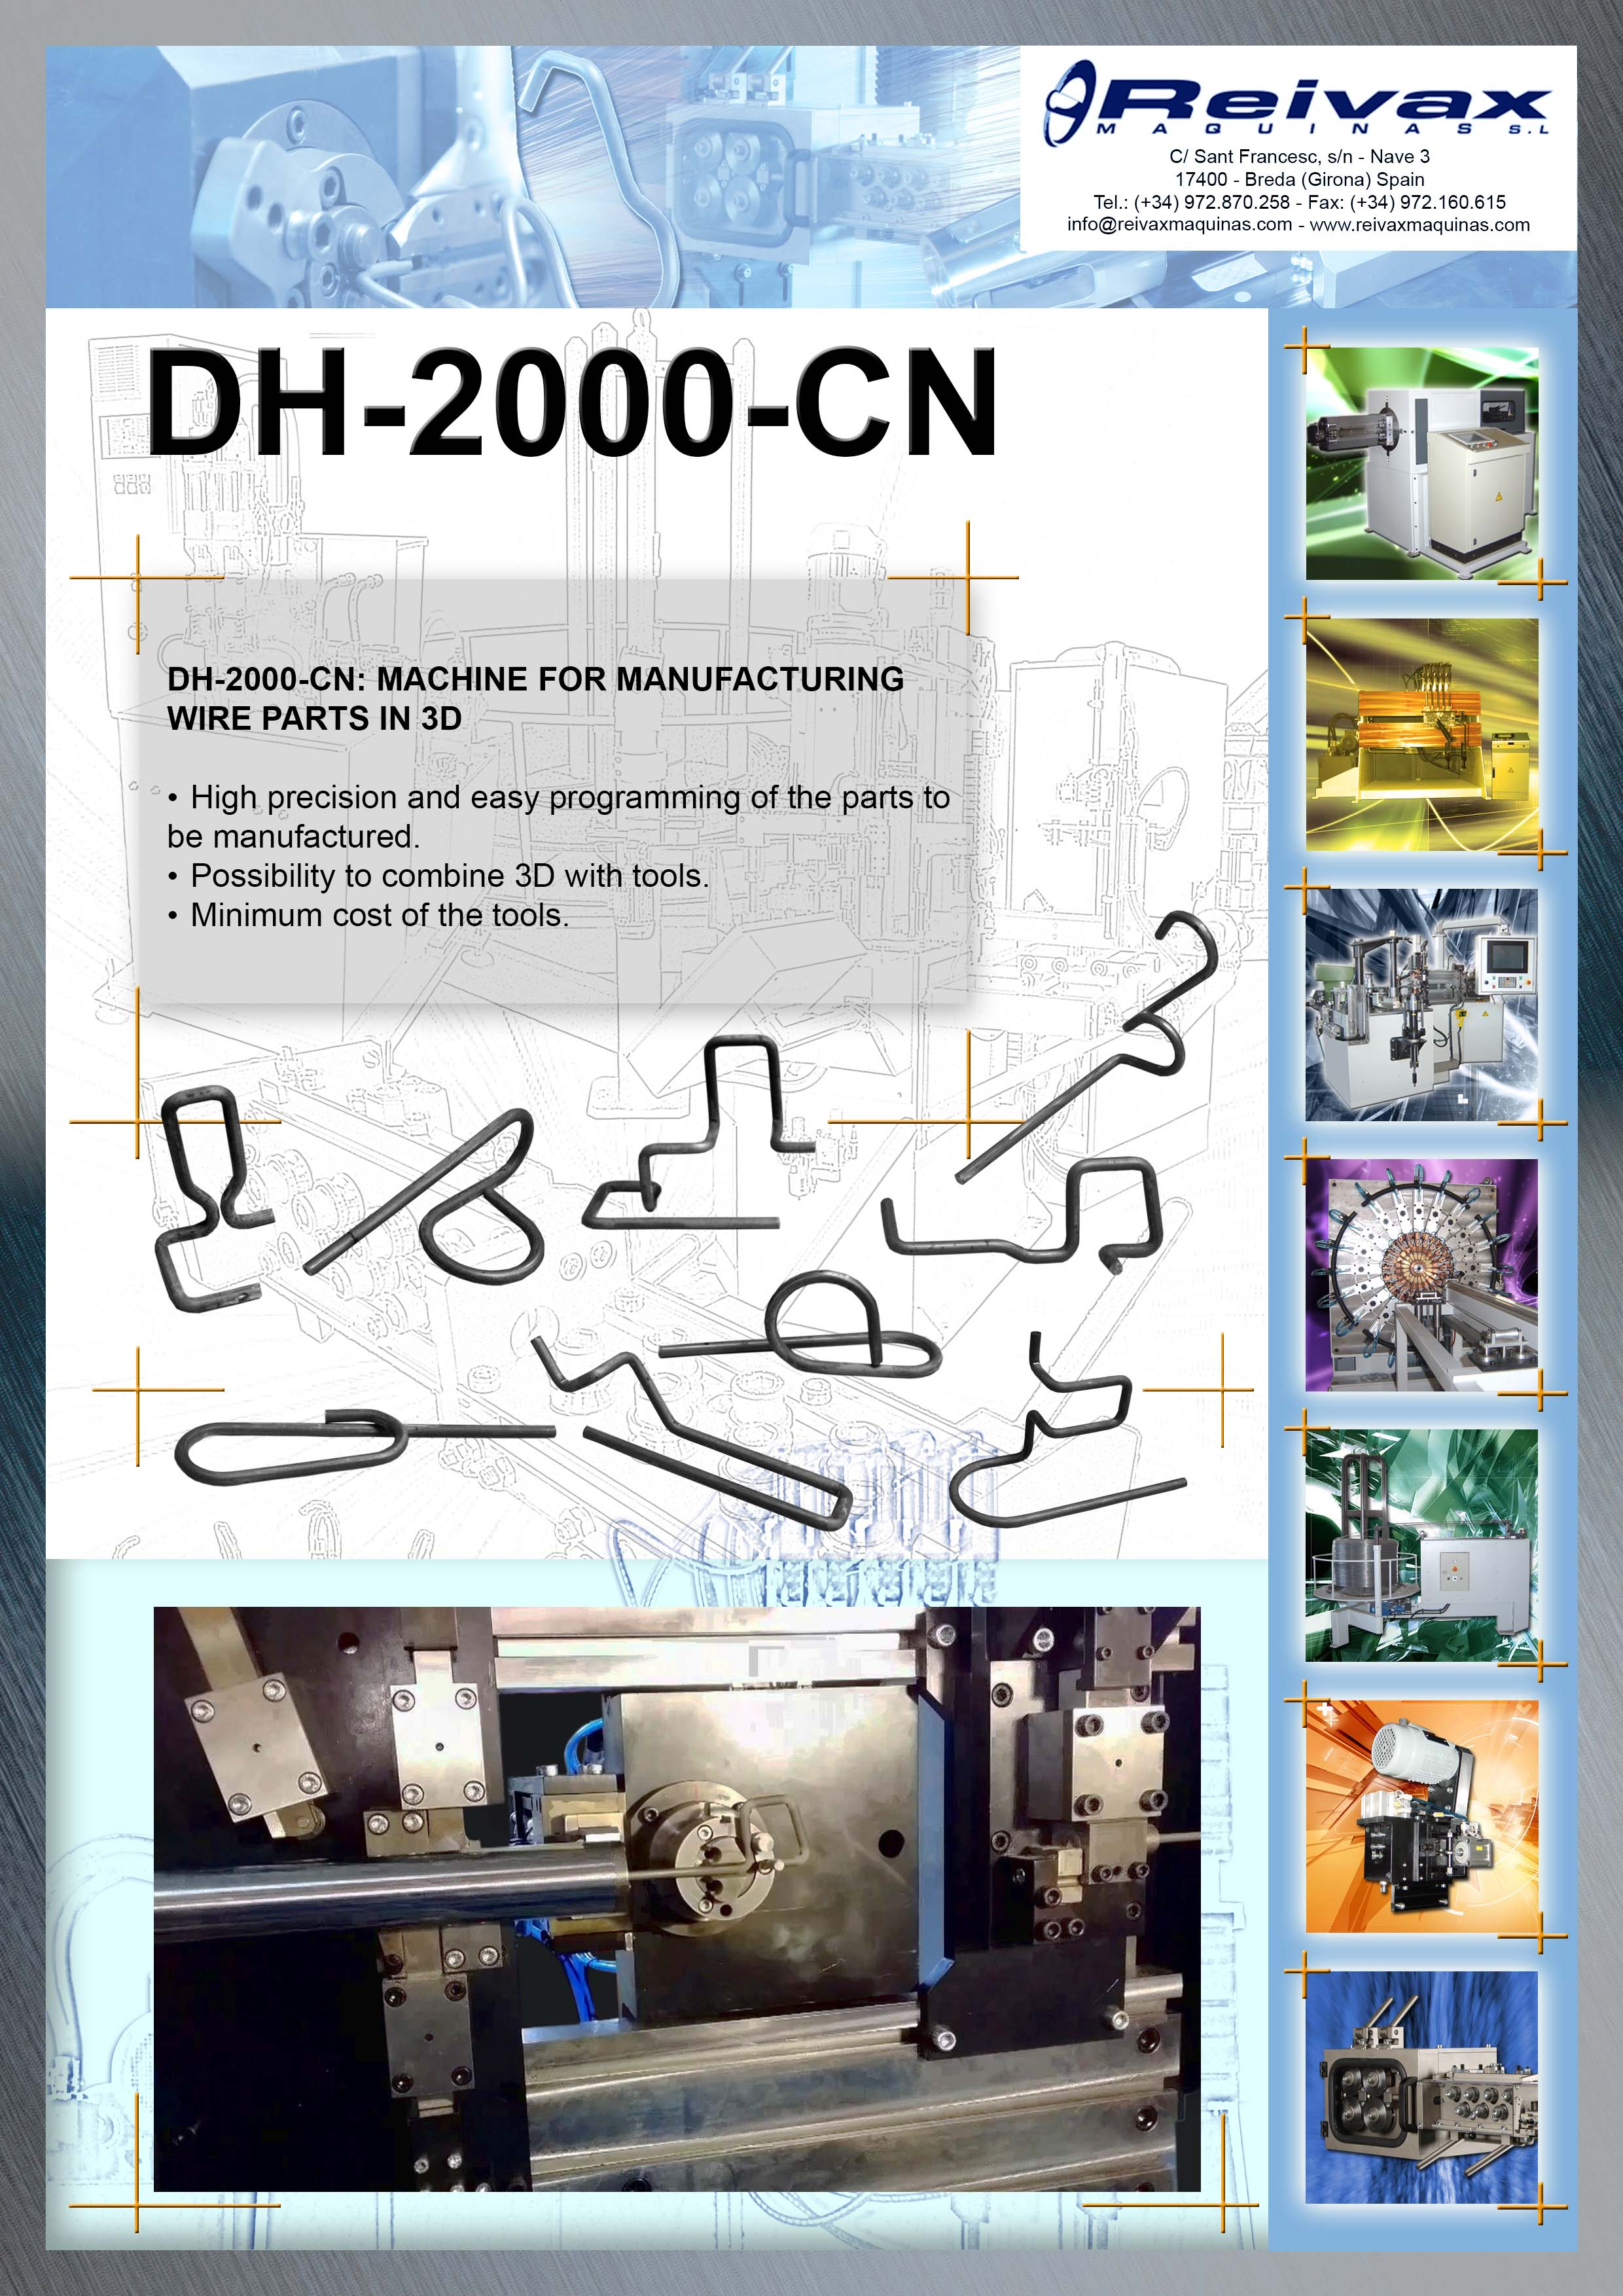 ReivaxMaquinas: Technical Details DH-2000-CN